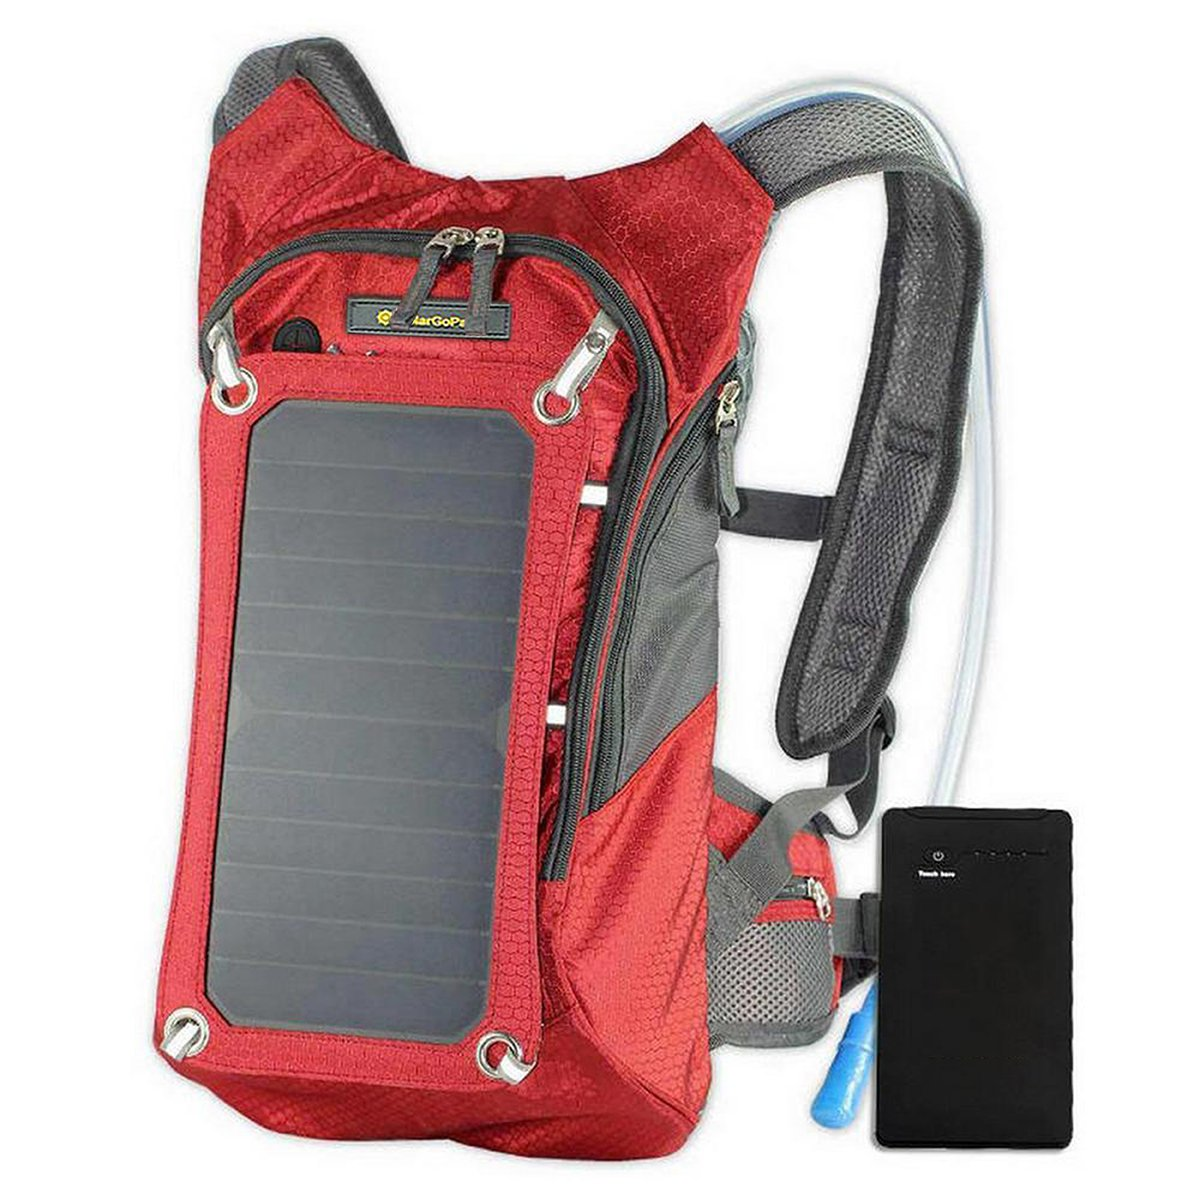 SolarGoPack Solar Powered 1.8 Liter Hydration Backpack / 7 Watt Solar Panel and 10K mAh Charging Battery/Phone and Electronic Device Power Charger Back Pack/Red